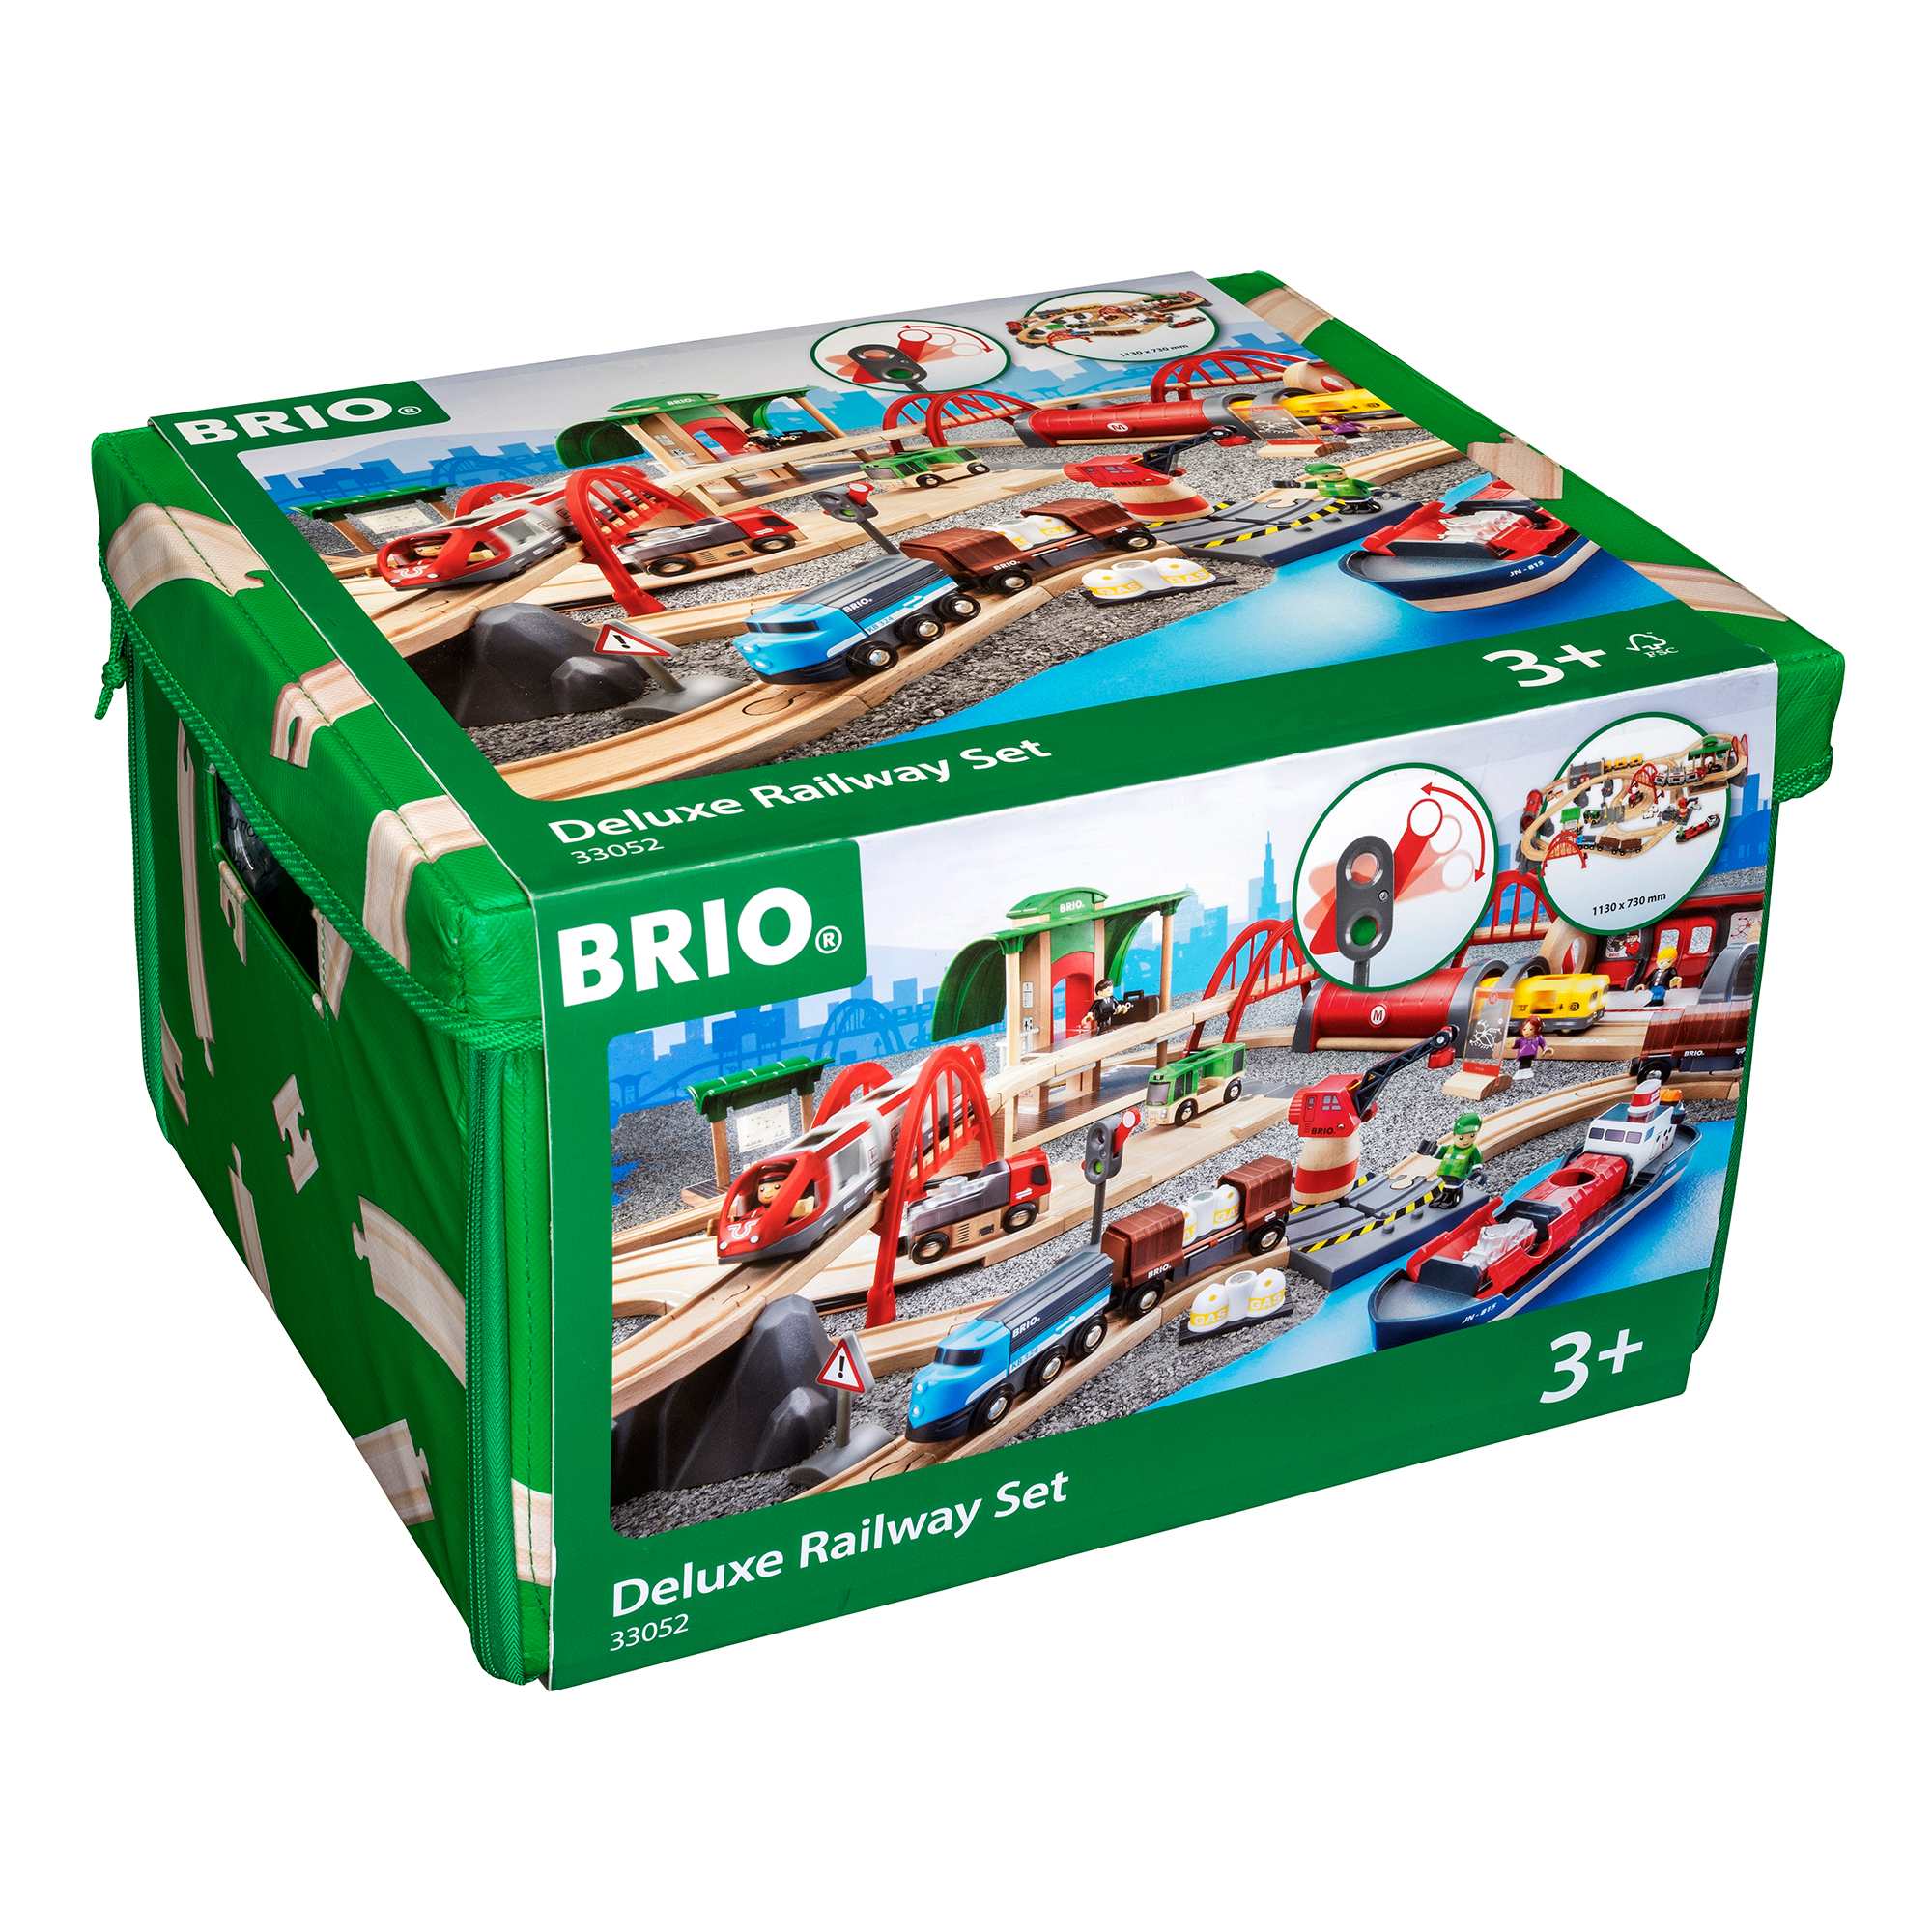 Picture of BRIO Deluxe Railway Set